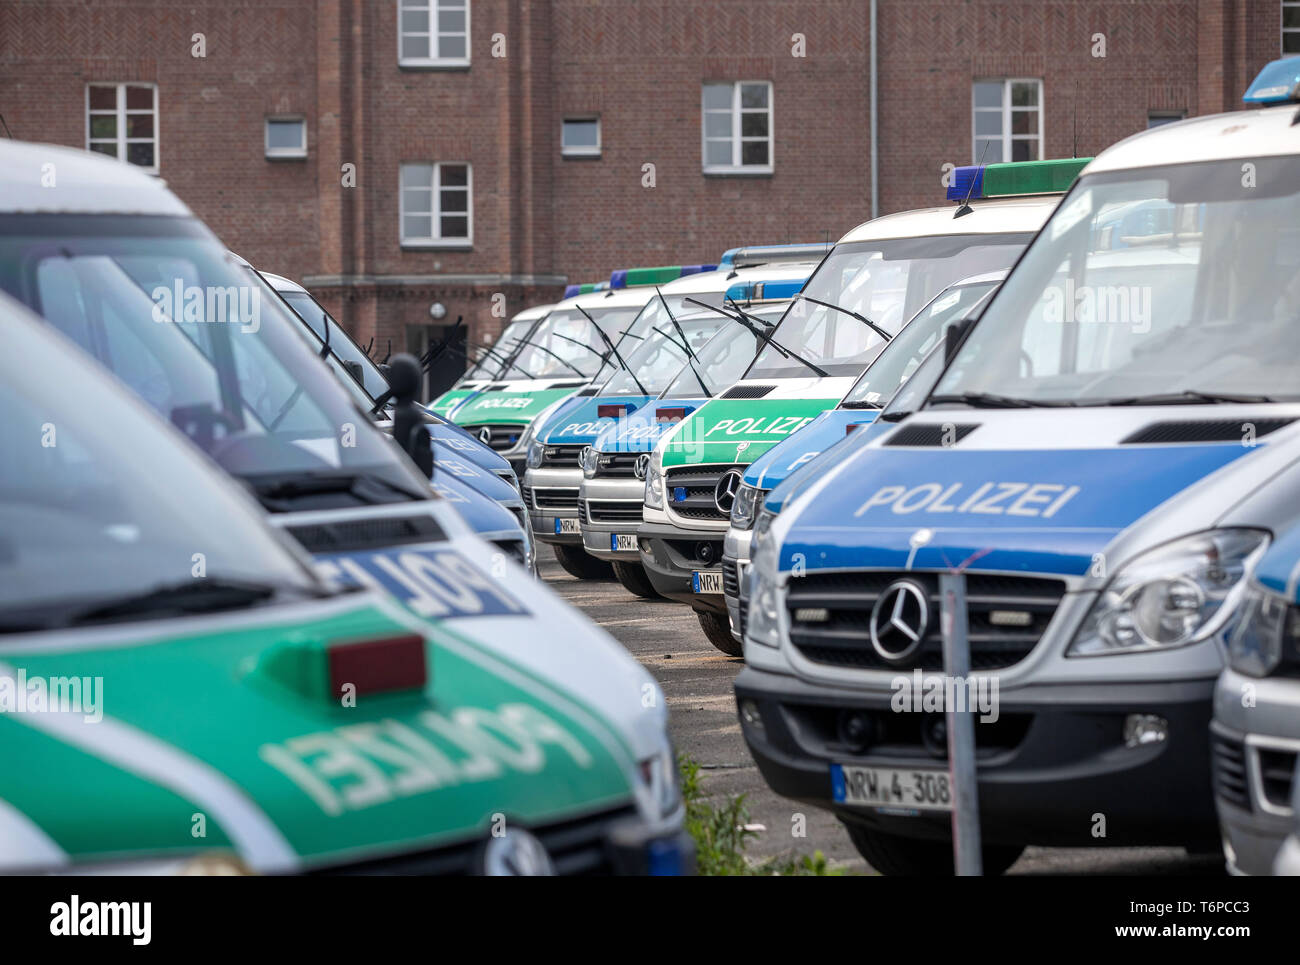 "Duisburg, Germany. 02nd May, 2019. Police trucks are standing in the police barracks in Duisburg. In connection with a right-wing demonstration in Duisburg, a sticker of the right-extremist group ""Identitäre Bewegung"" has been discovered in a police van. North Rhine-Westphalia's Interior Minister Reul (CDU) considers it ""very likely"" that one of the ""usually"" six police officers transported in the car attached the sticker there. On the occasion of a visit to Greece, Reul called the process ""intolerable, not to accept at all"". Credit: Christoph Reichwein/dpa/Alamy Live News Stock Photo"